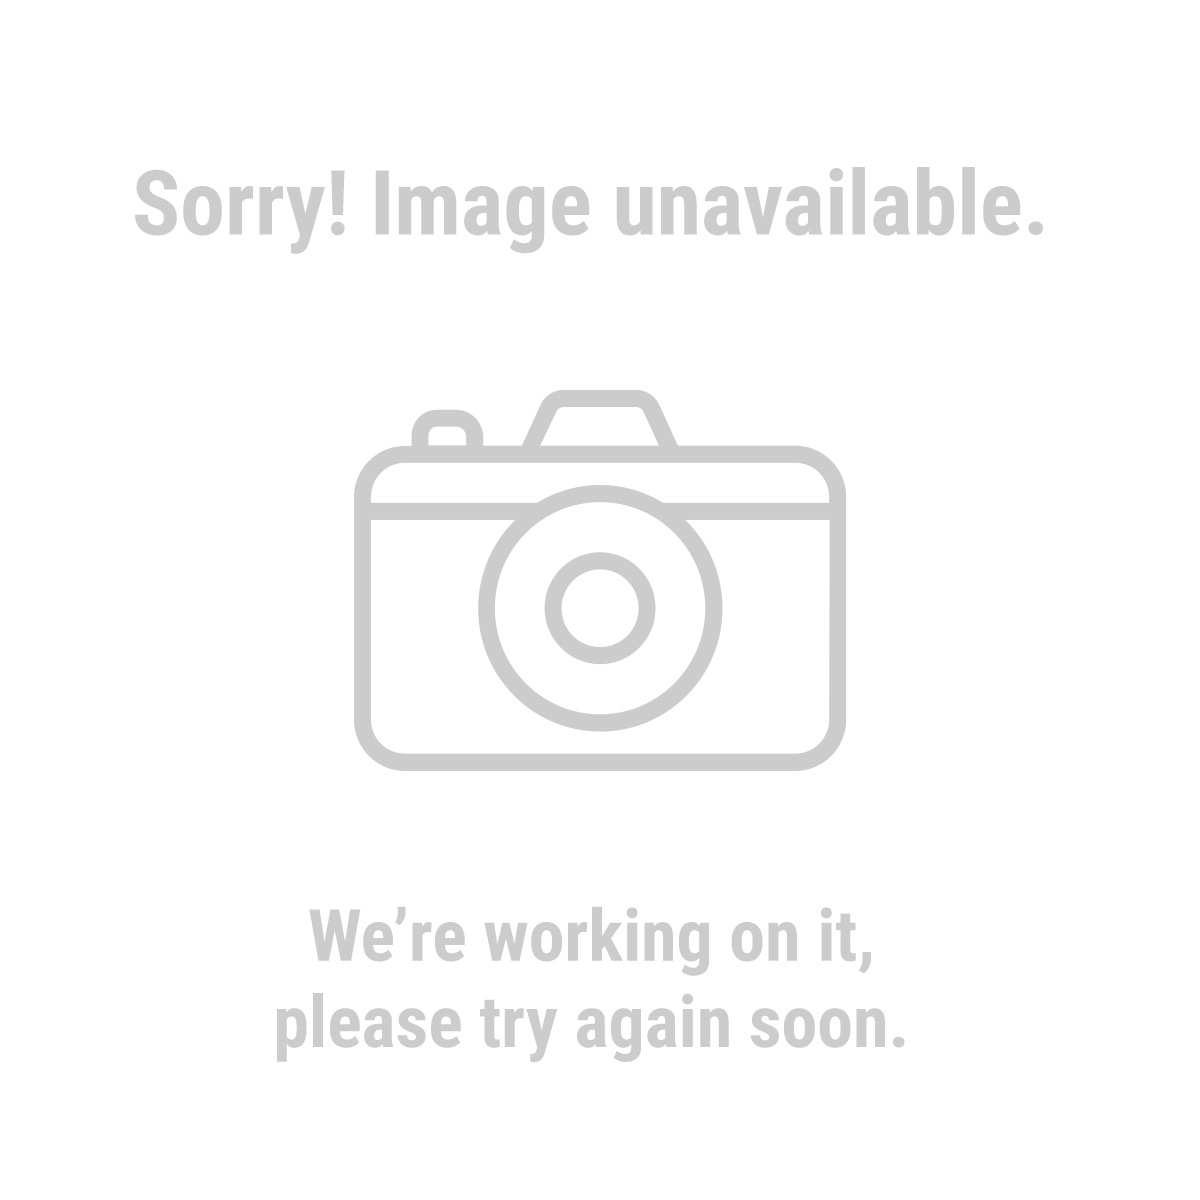 HFT 41447 50 ft. x 14 Gauge Outdoor Extension Cord